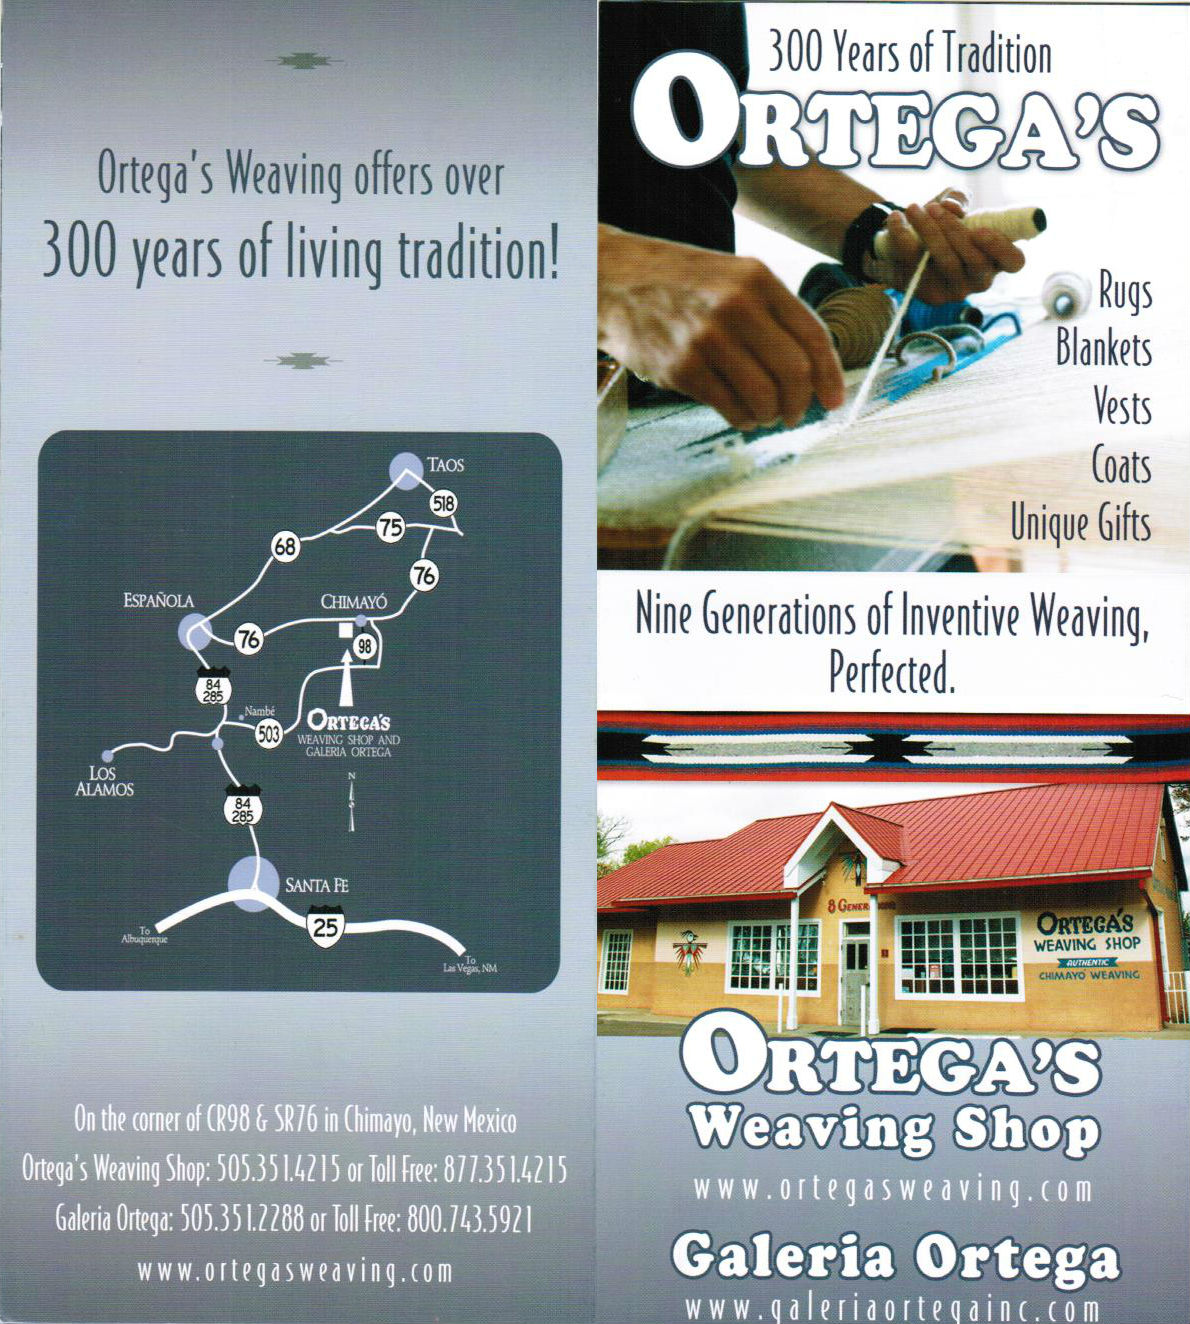 Ortega's Weaving Shop brochure